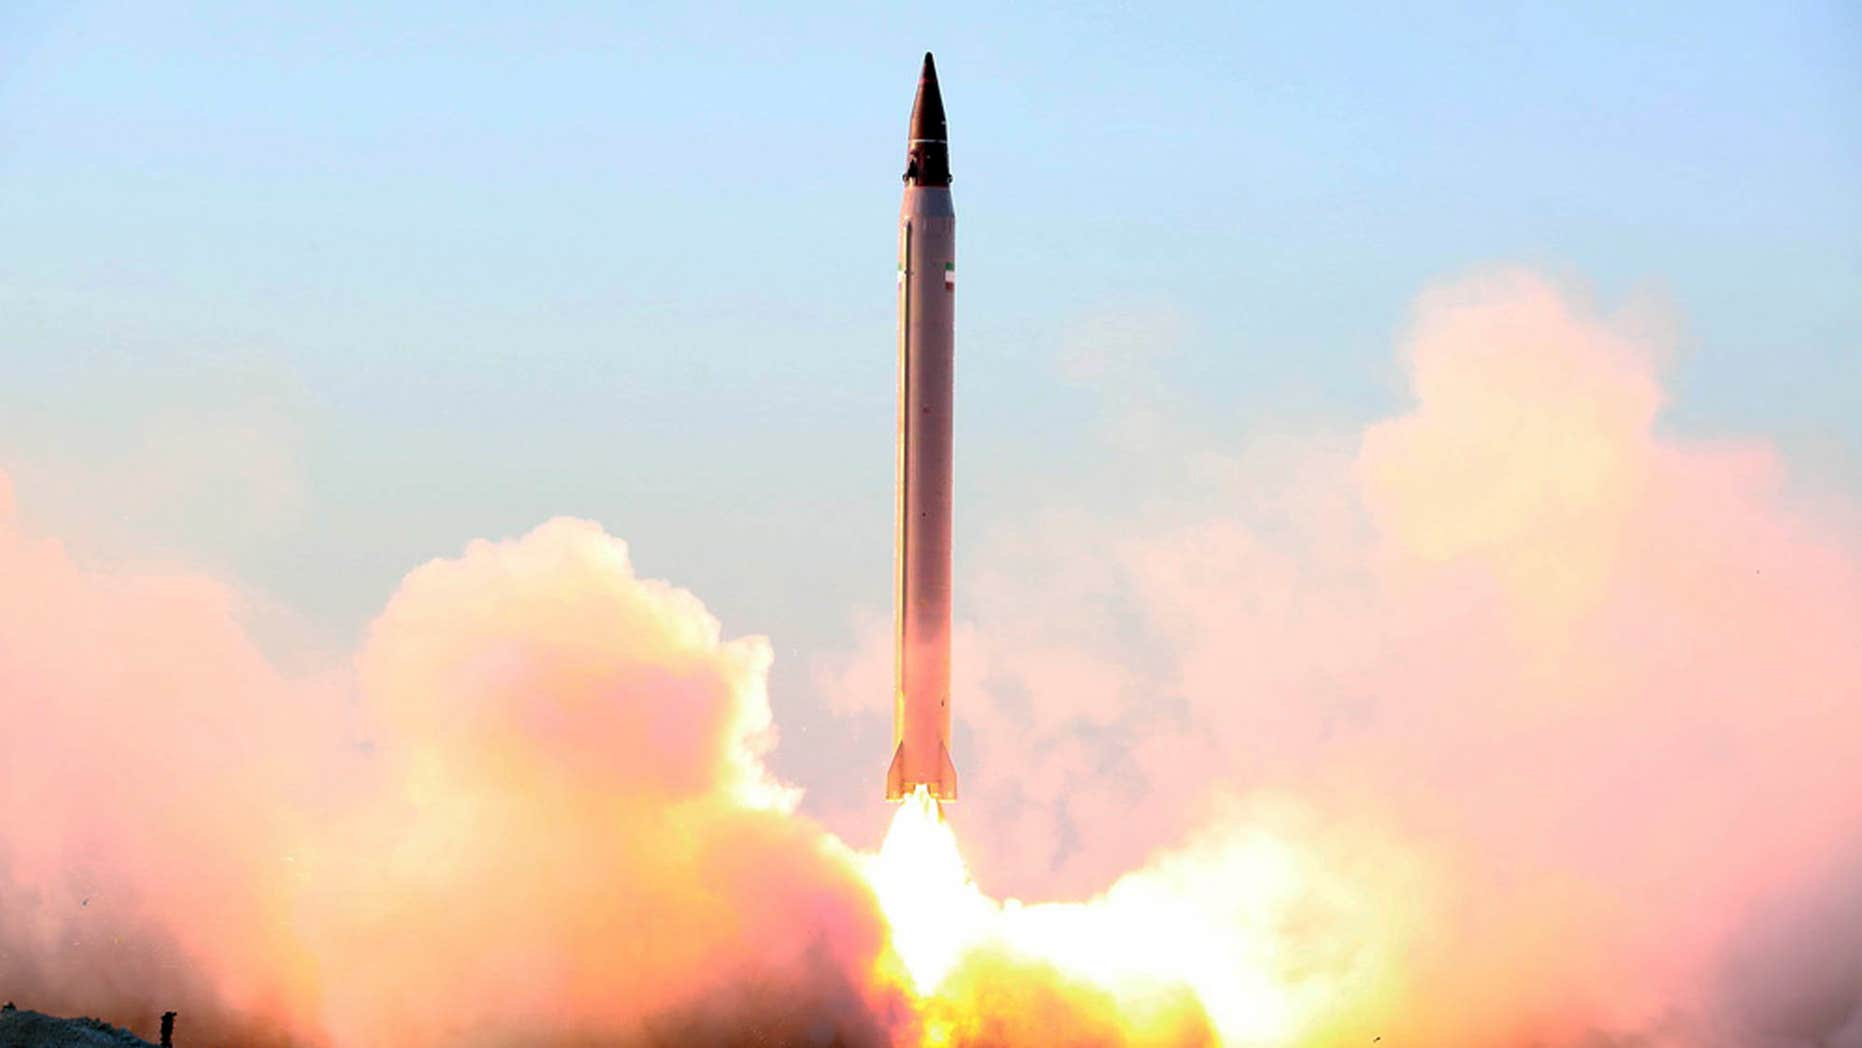 FILE - This file picture released by the official website of the Iranian Defense Ministry on Sunday, Oct. 11, 2015, claims to show the launching of an Emad long-range ballistic surface-to-surface missile in an undisclosed location.